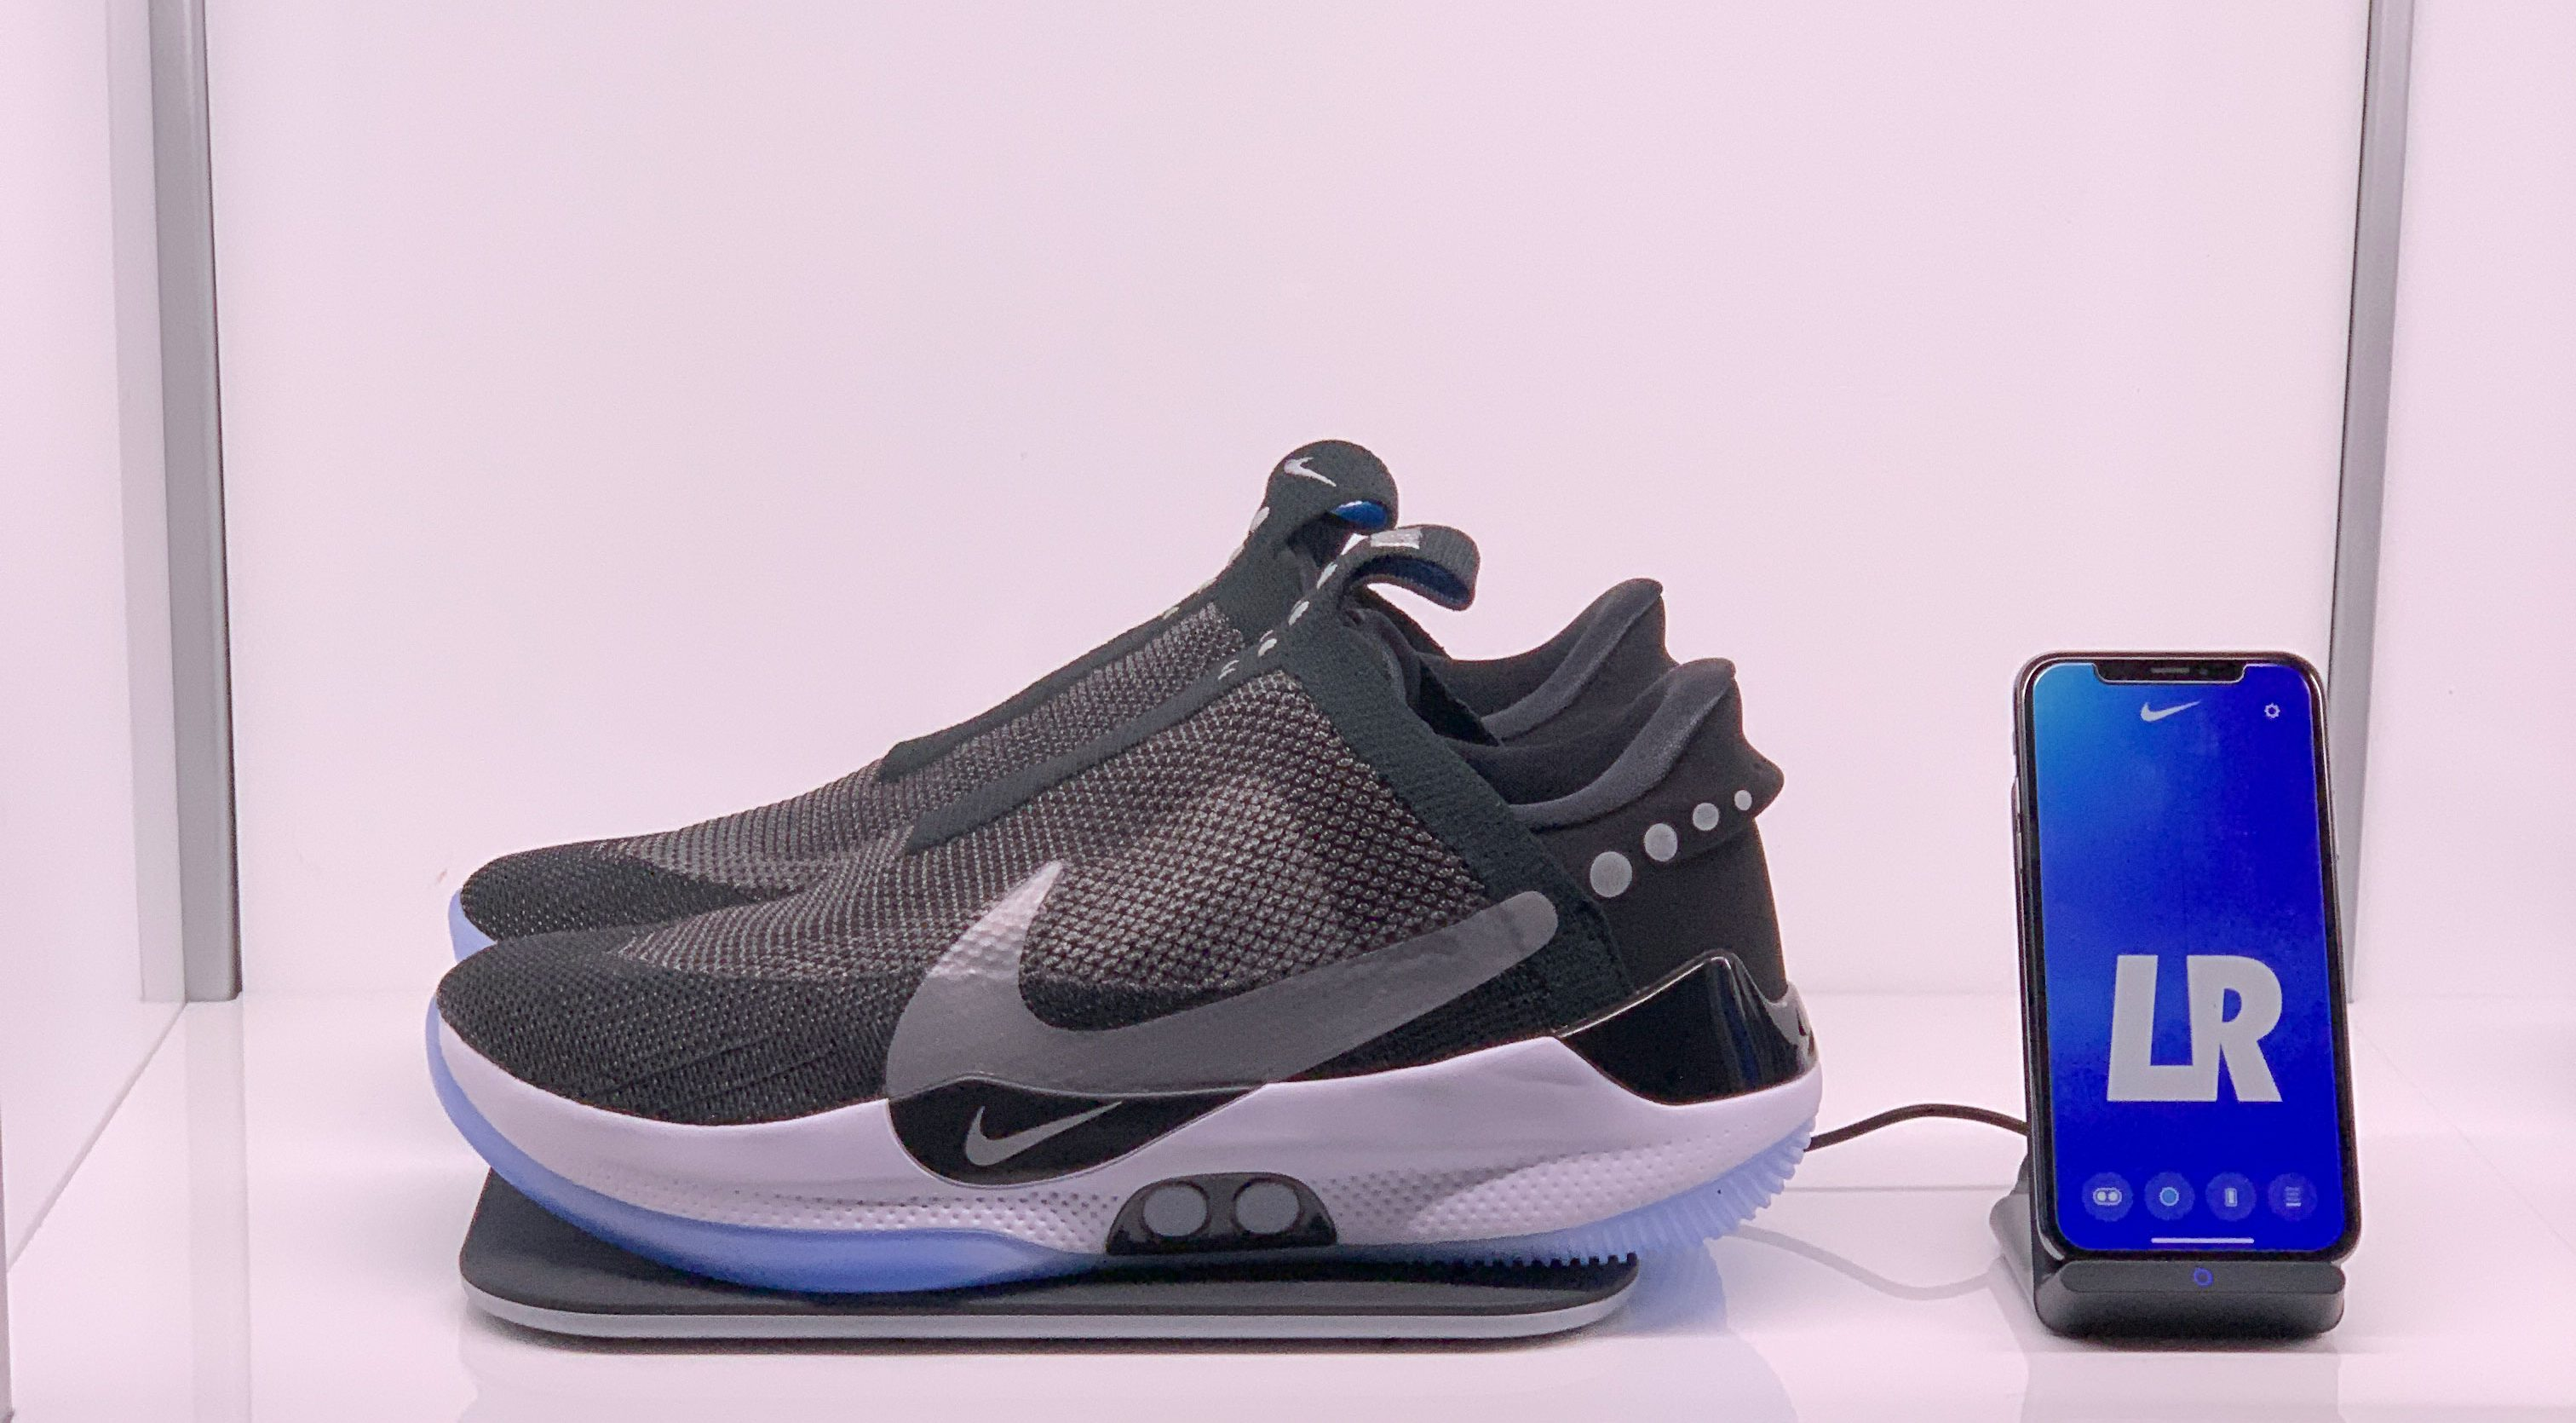 Nike's auto-laced future | TechCrunch